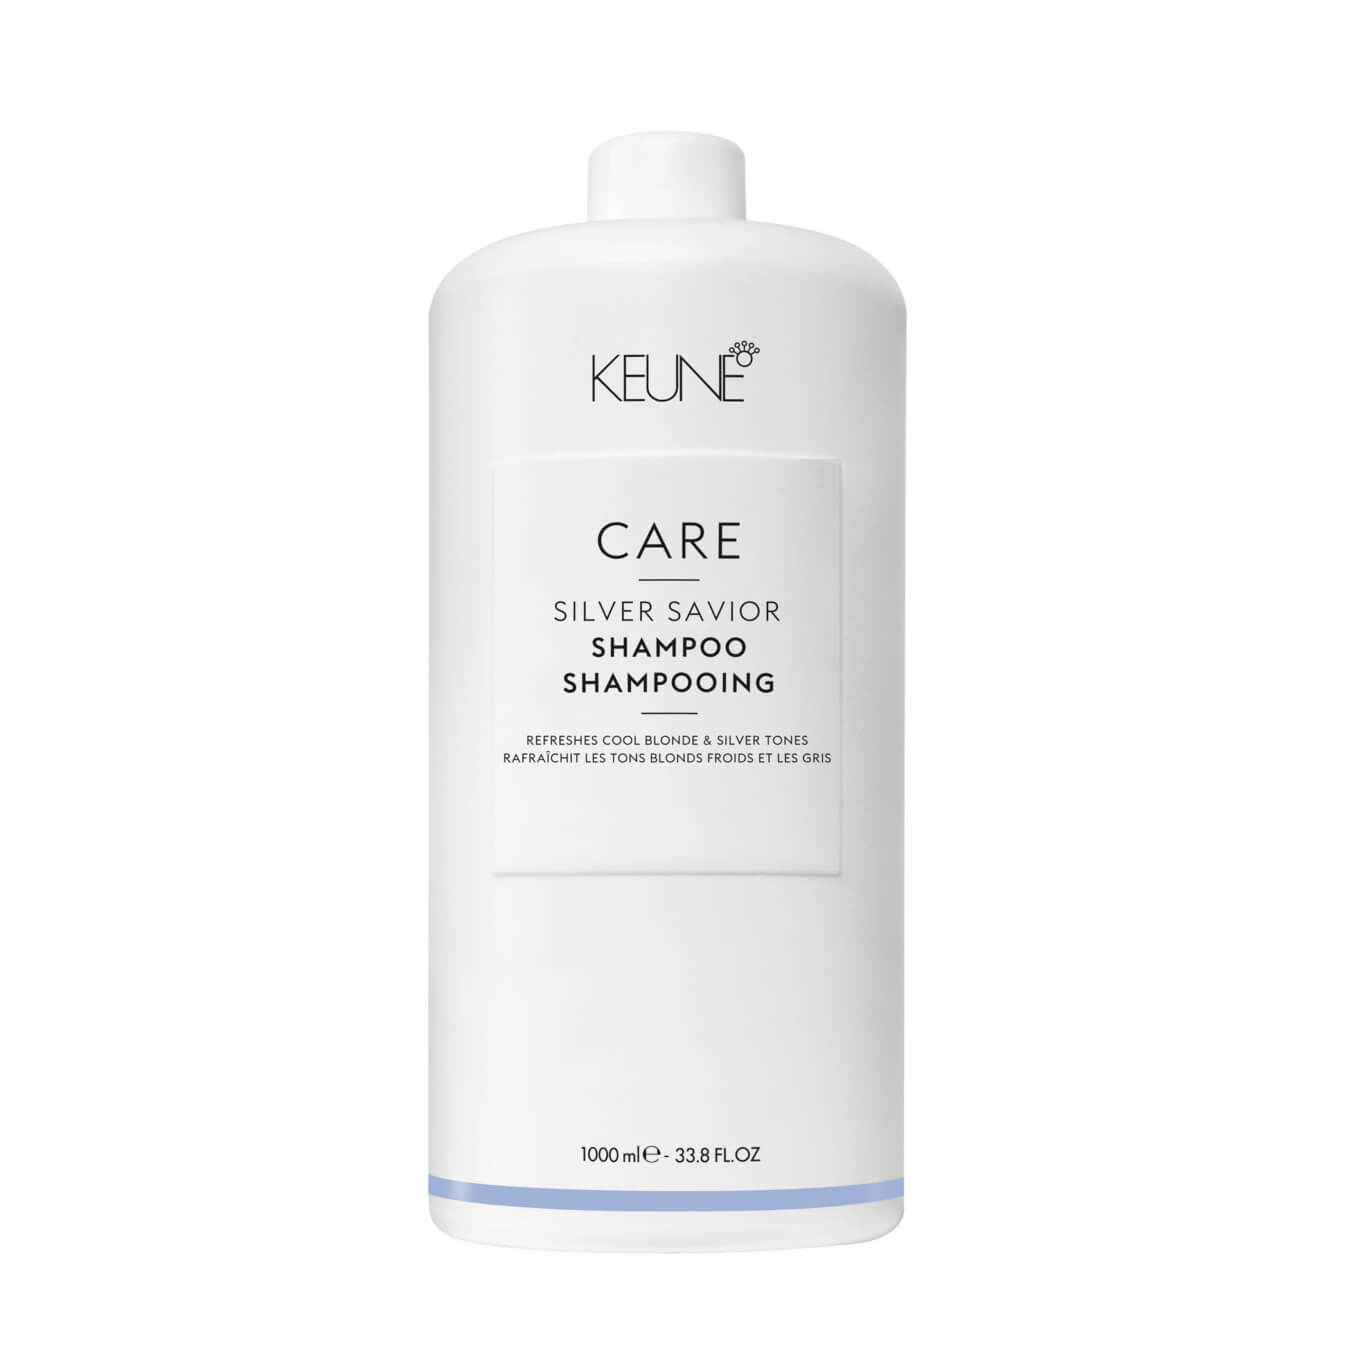 Koop Keune Care Silver Savior Shampoo 1000ml